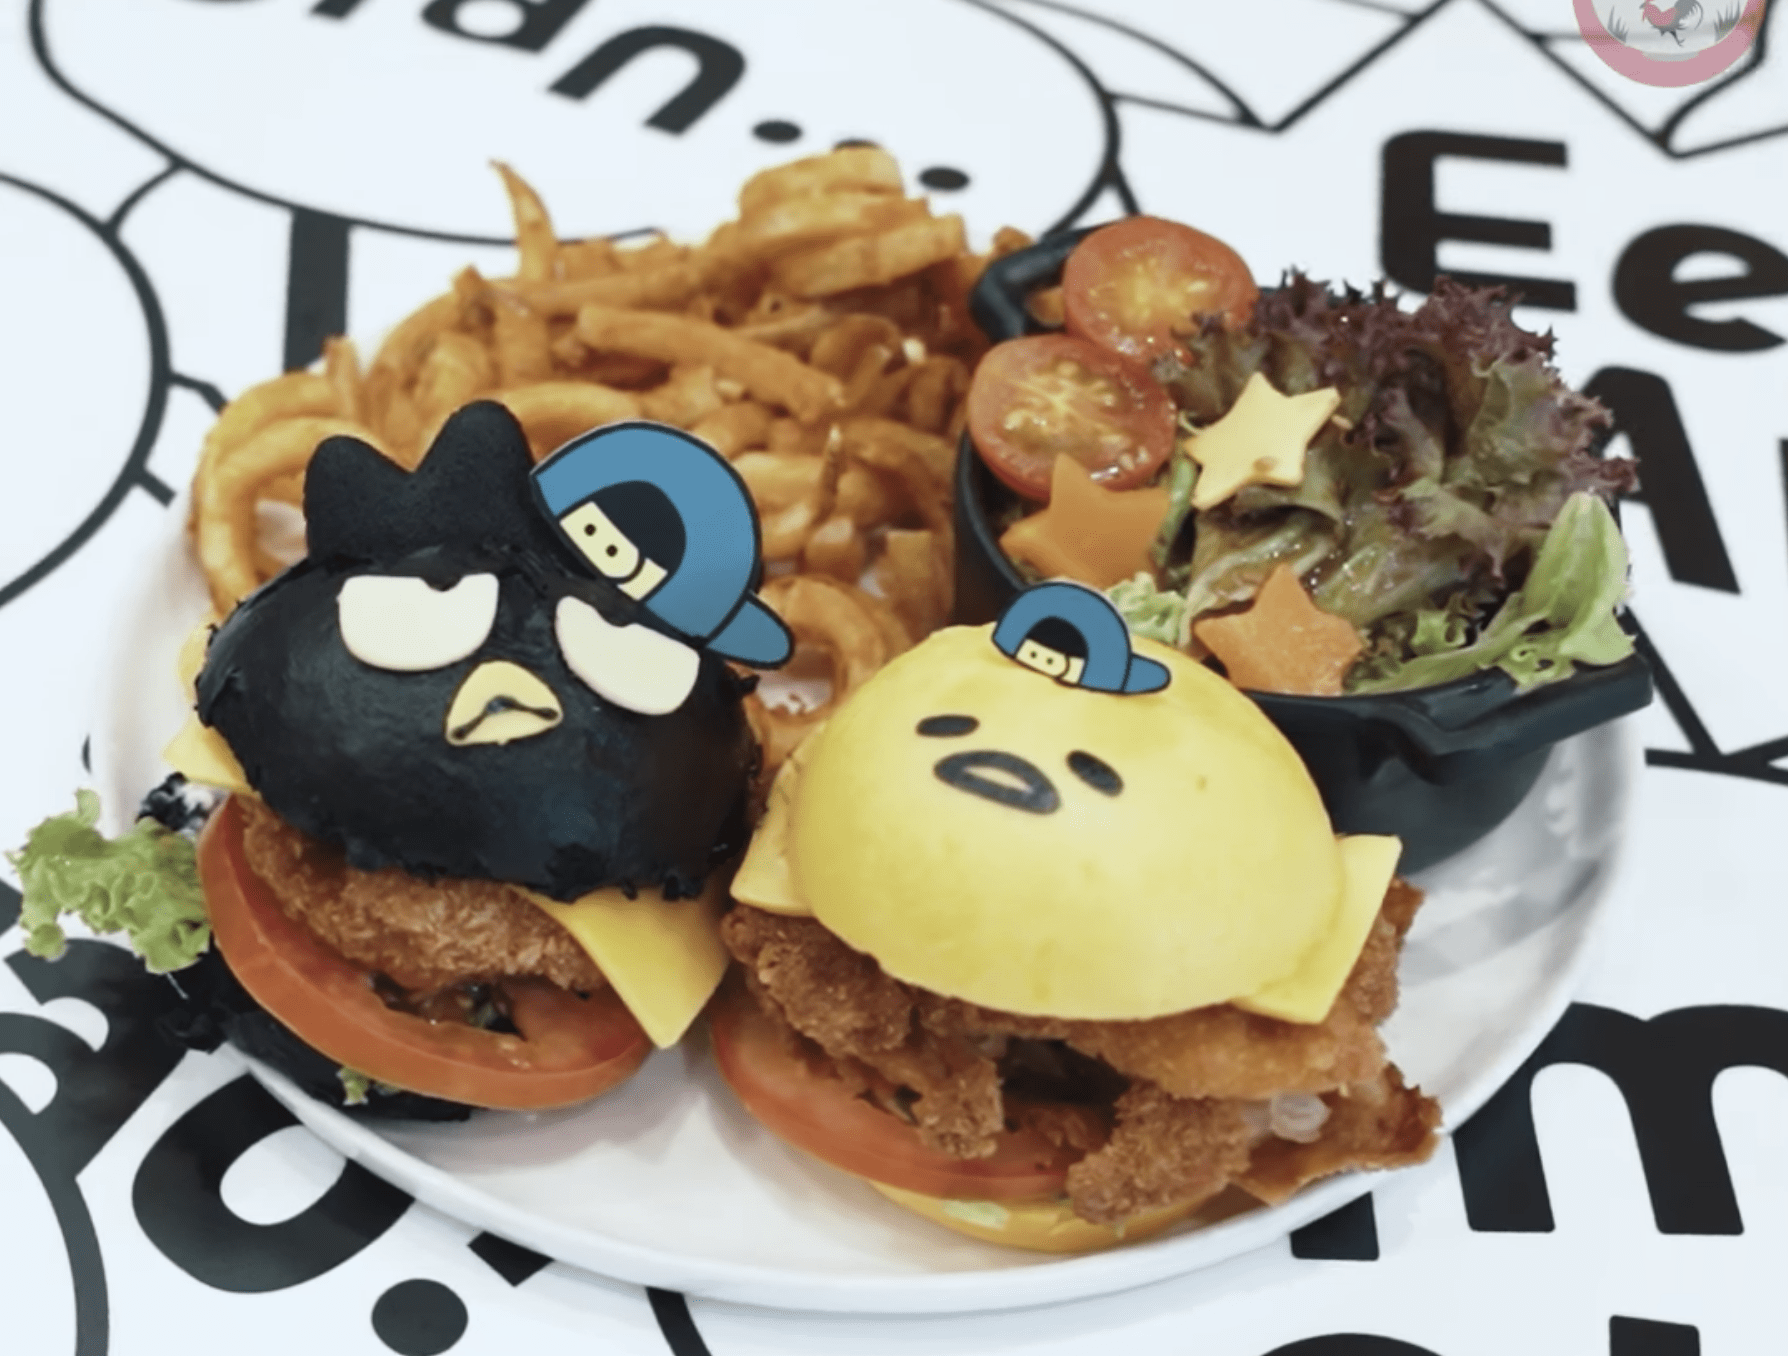 New Cafe August 2020 - Gudetama x Bad Badtz-Maru